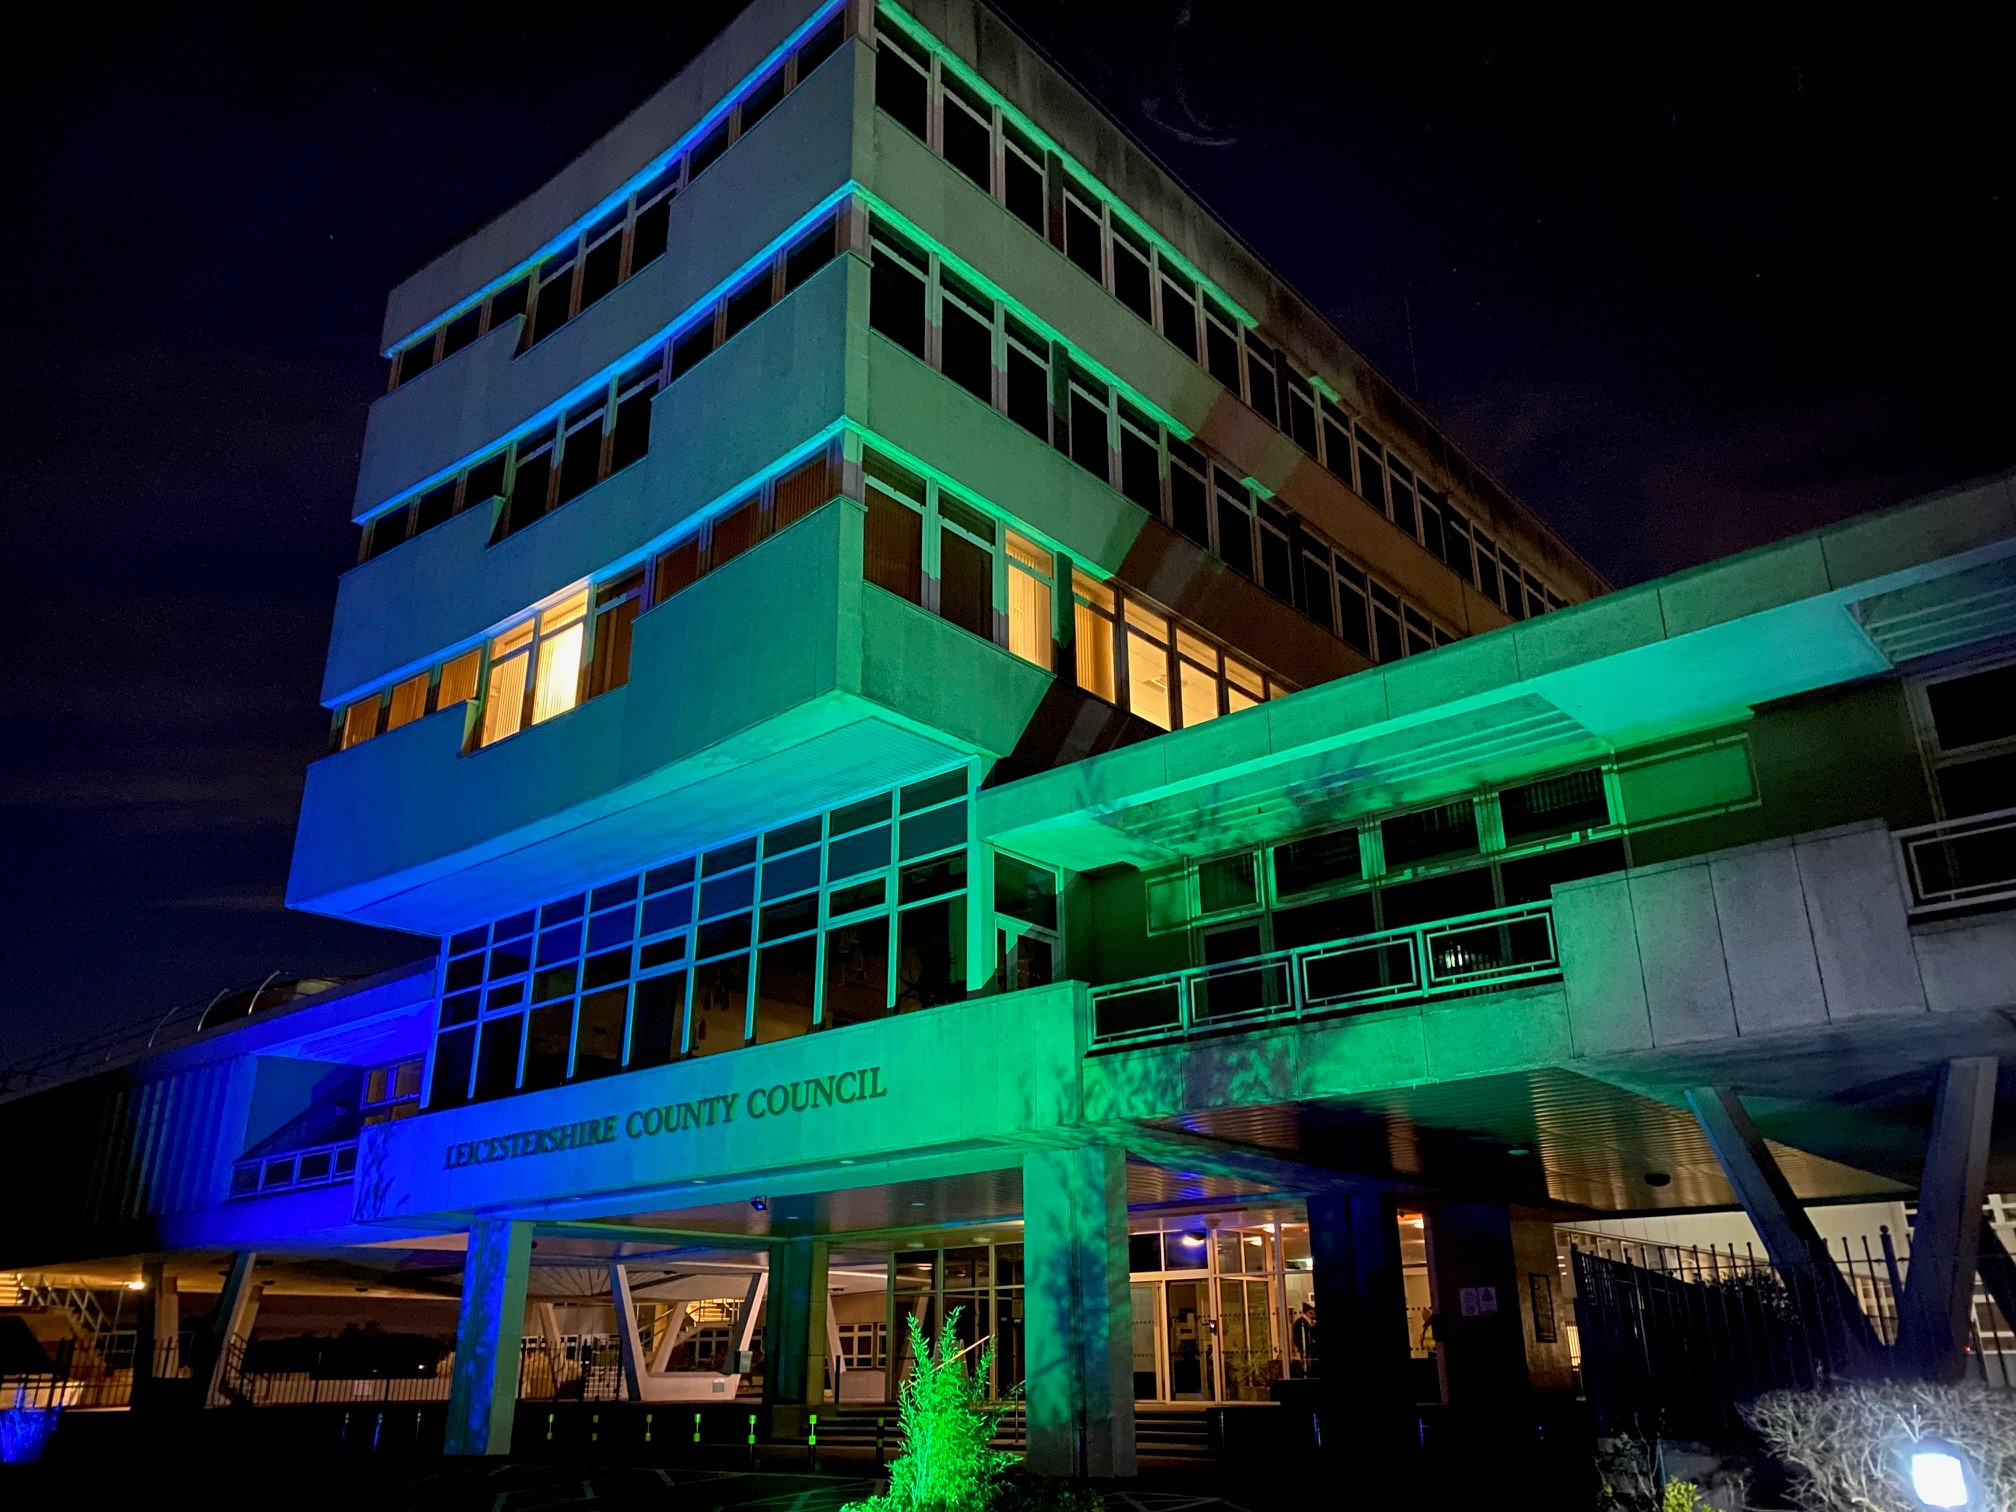 County Hall in blue and green